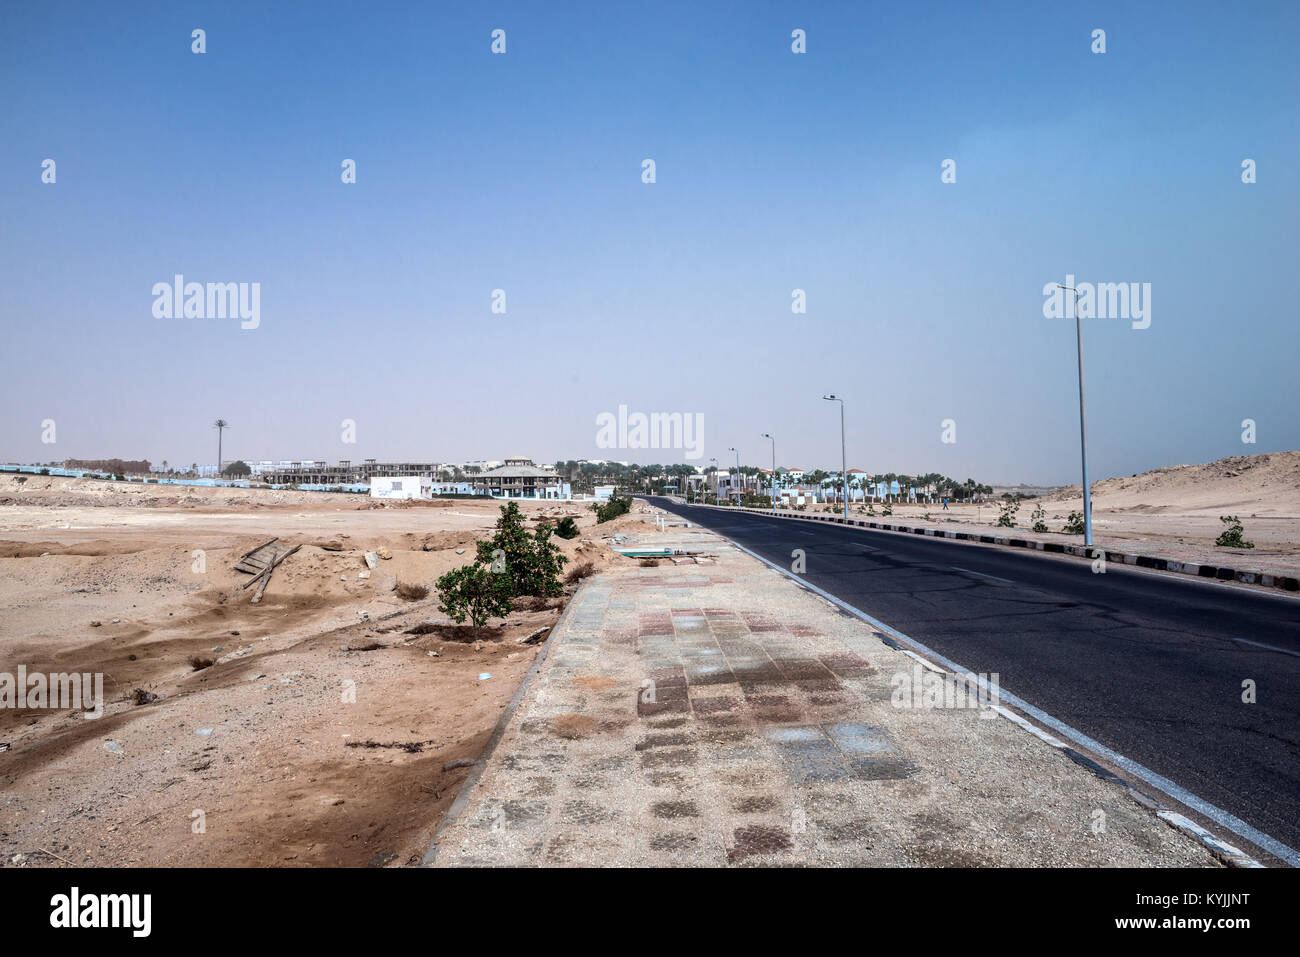 Road in the city of Sharm El Sheikh, surrounded by a desert - Stock Image